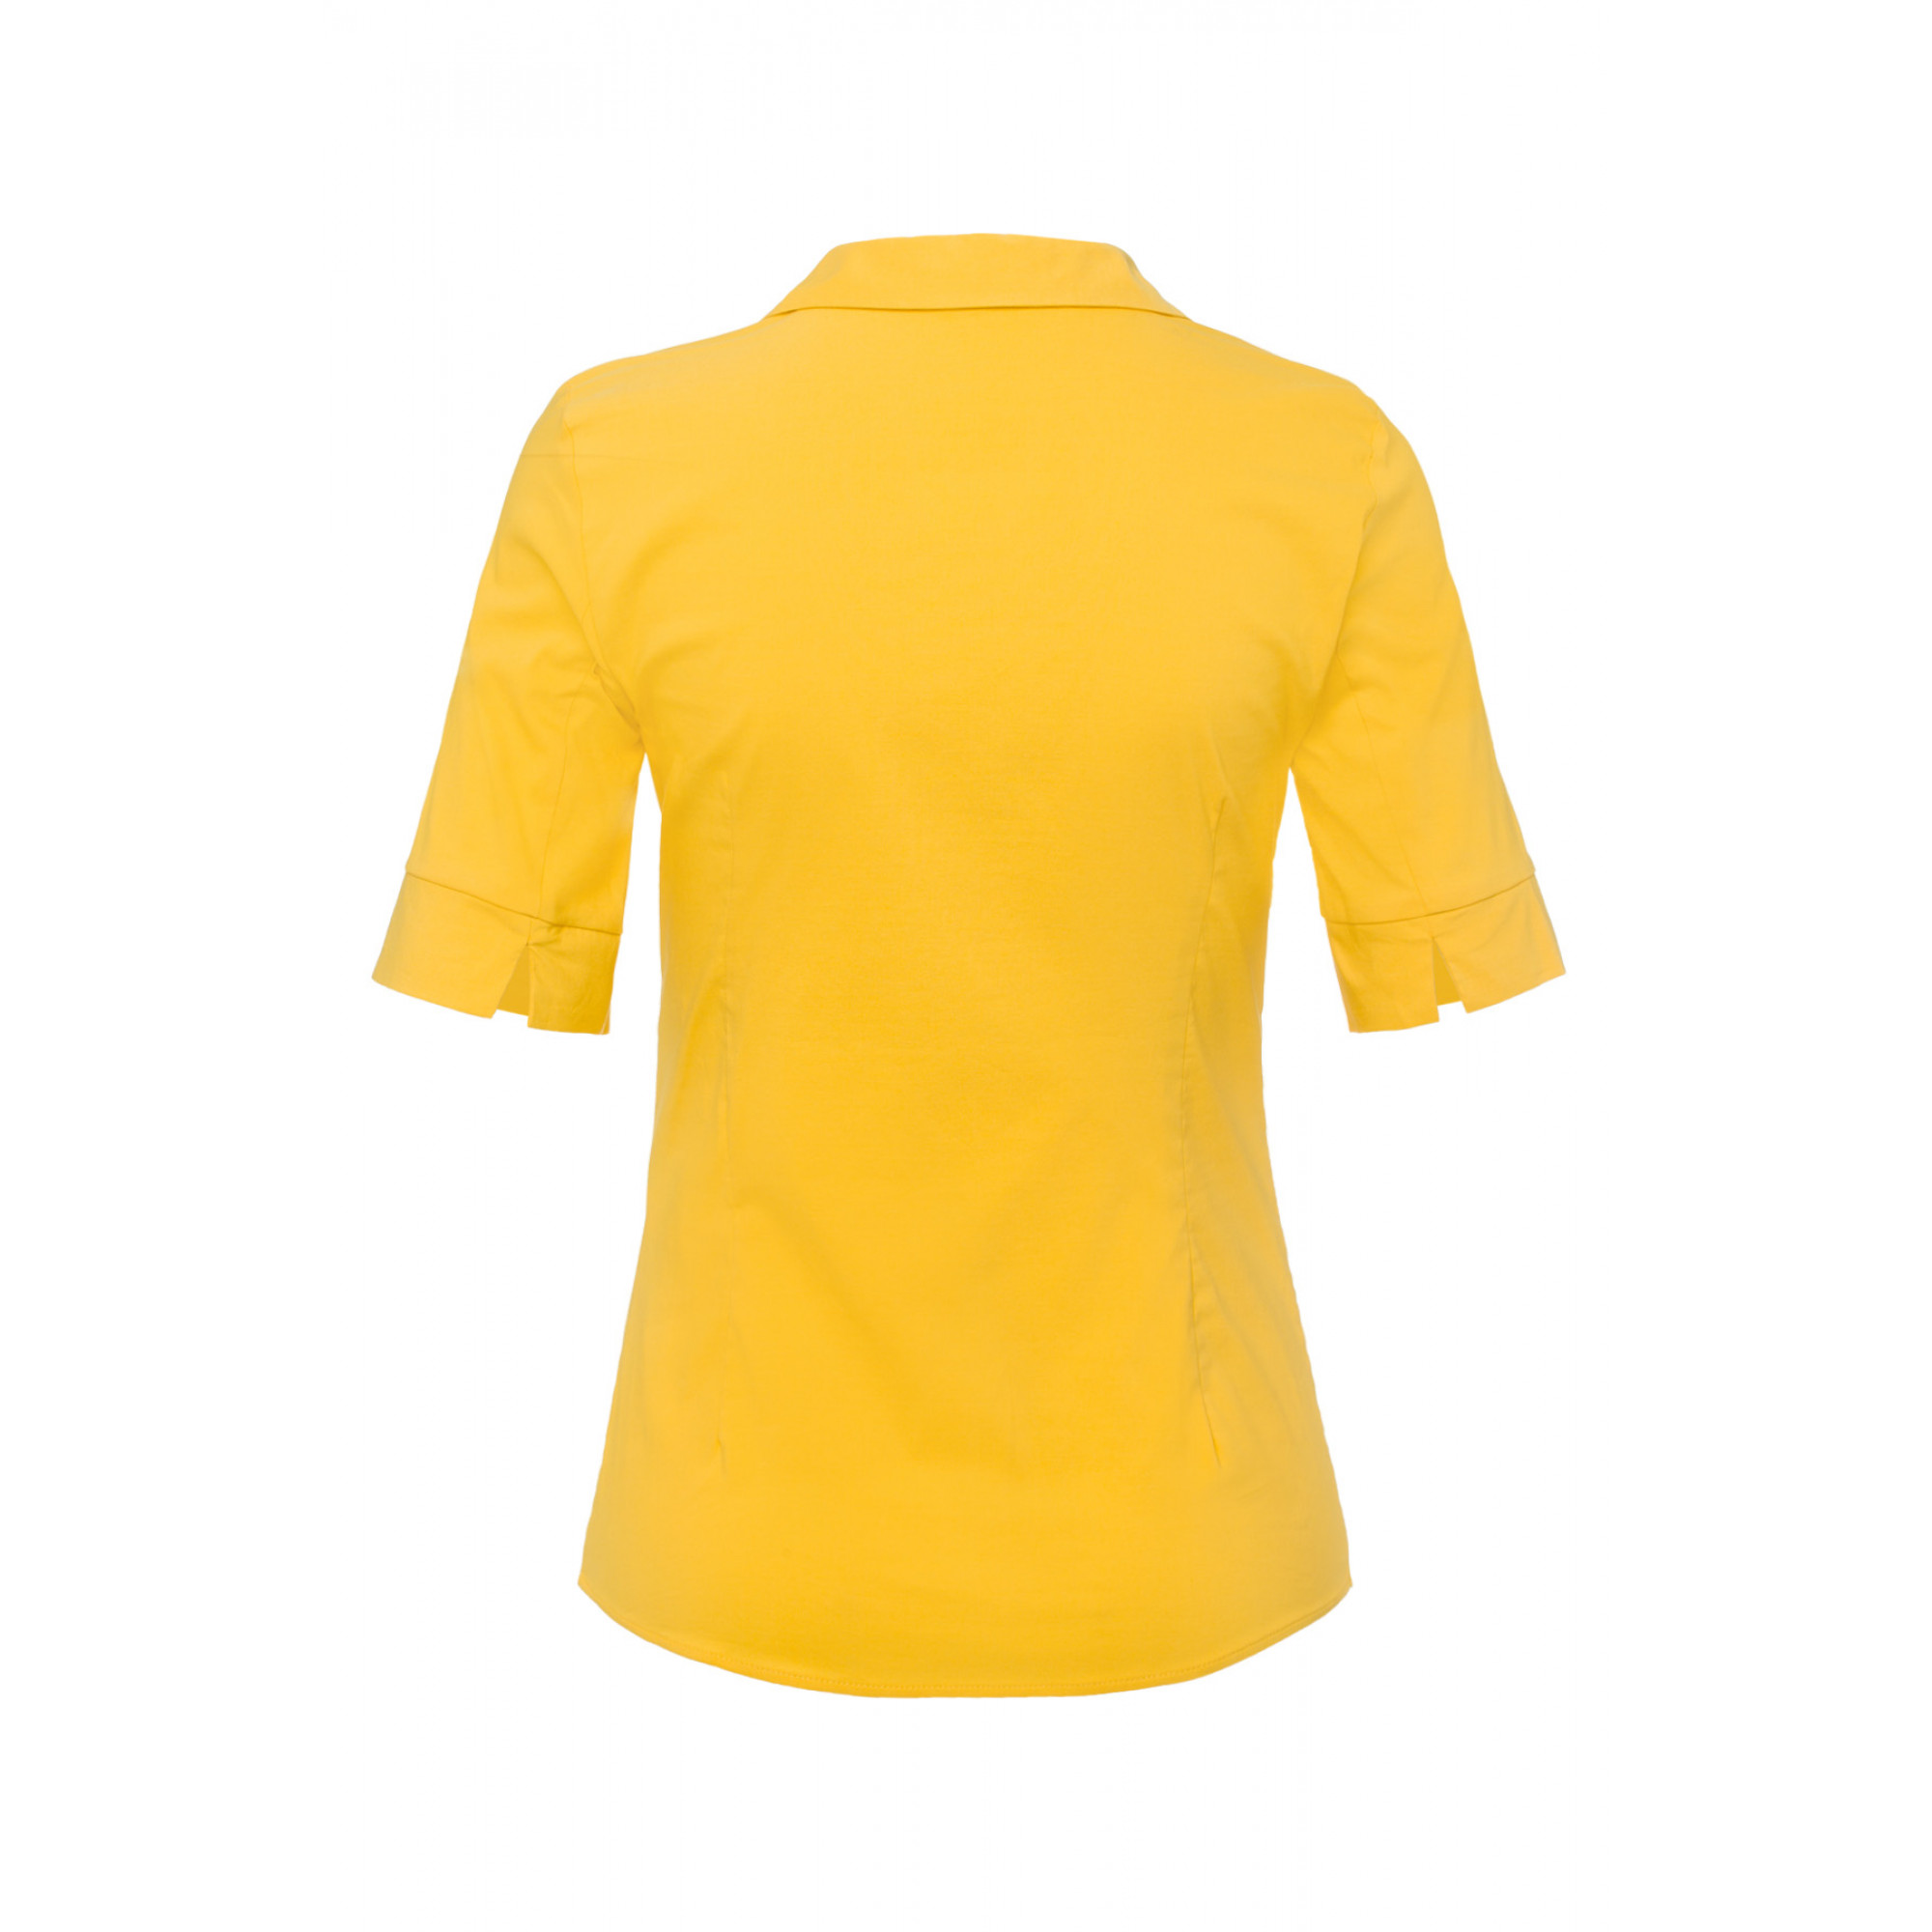 Baumwoll/Stretch Bluse, bright sun 91052566-0155 2